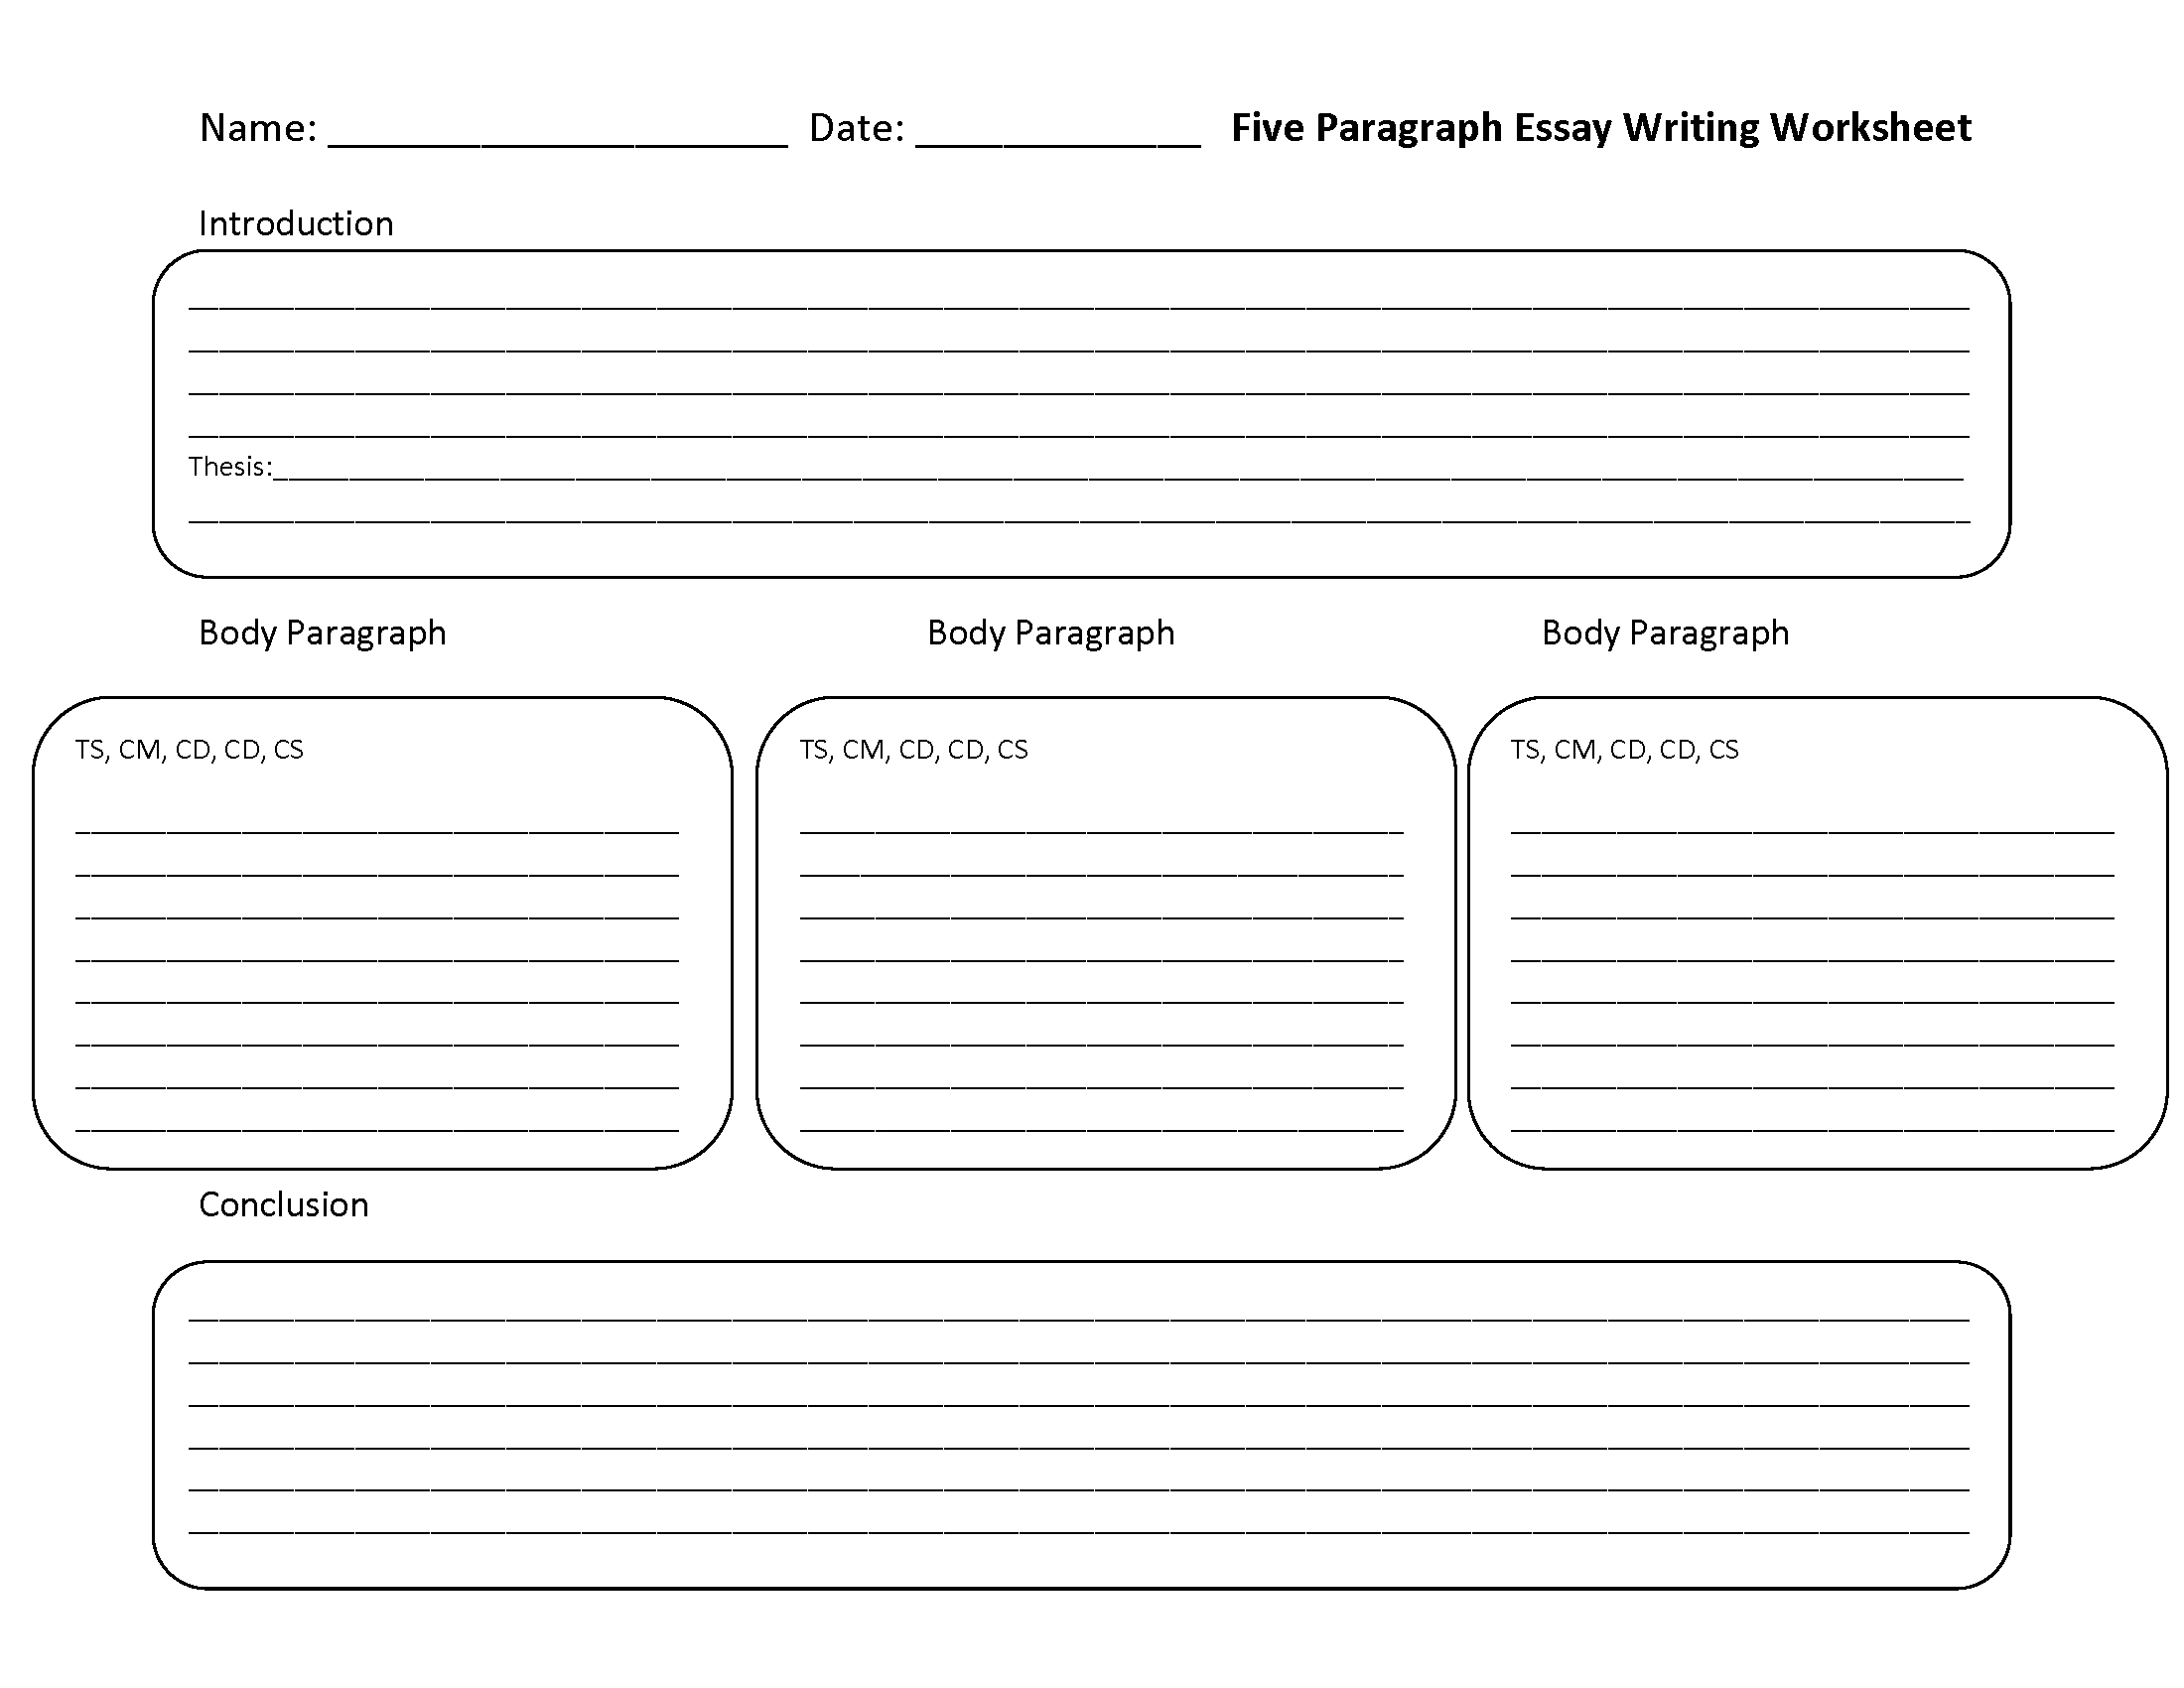 008 Essay Graphic Organizer Paragraph Poemsrom Co For Writing Literaryssays Worksheets Throughout Organizers College Informative Free Persuasive Best Descriptive Argumentative Unforgettable Middle School Pdf Template Generator Full